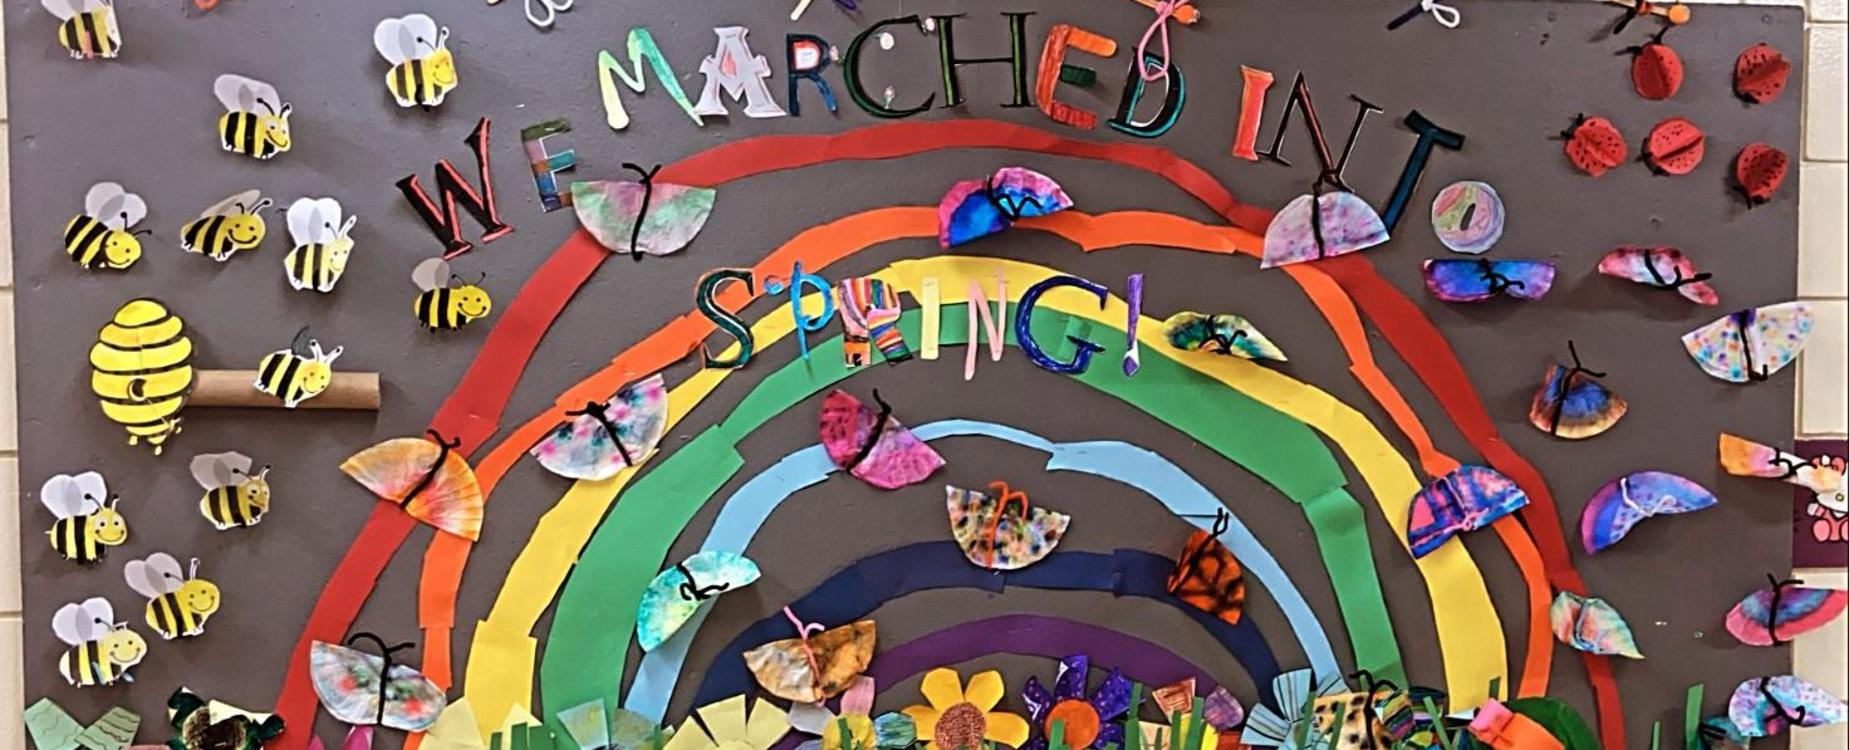 We Marched into Spring Bulletin Board